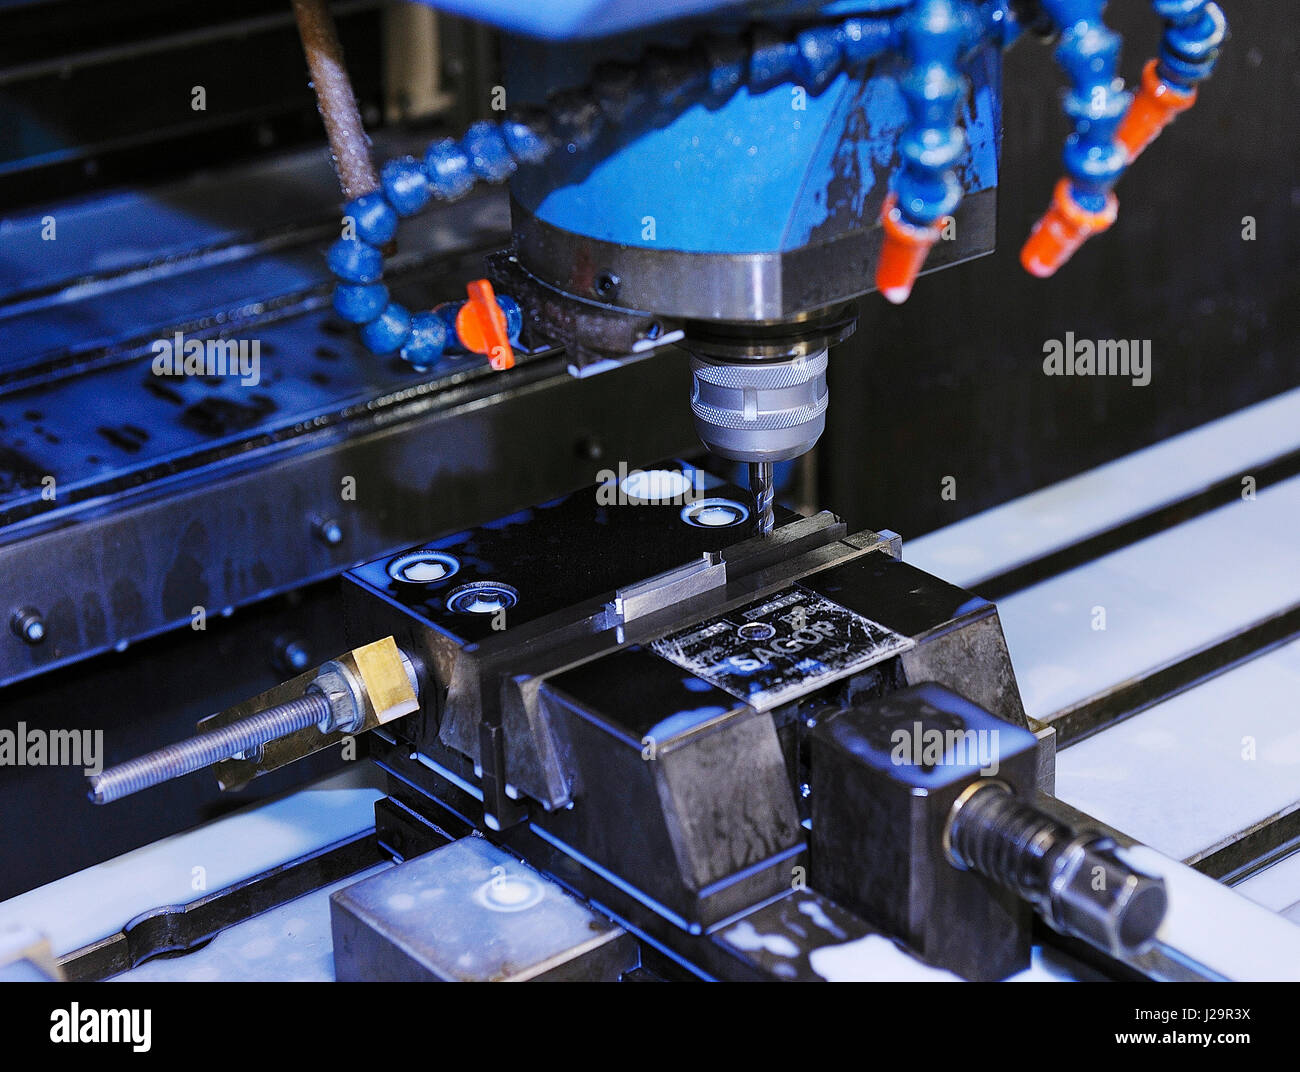 France, high-precision alpha-numeric machine tool - Stock Image